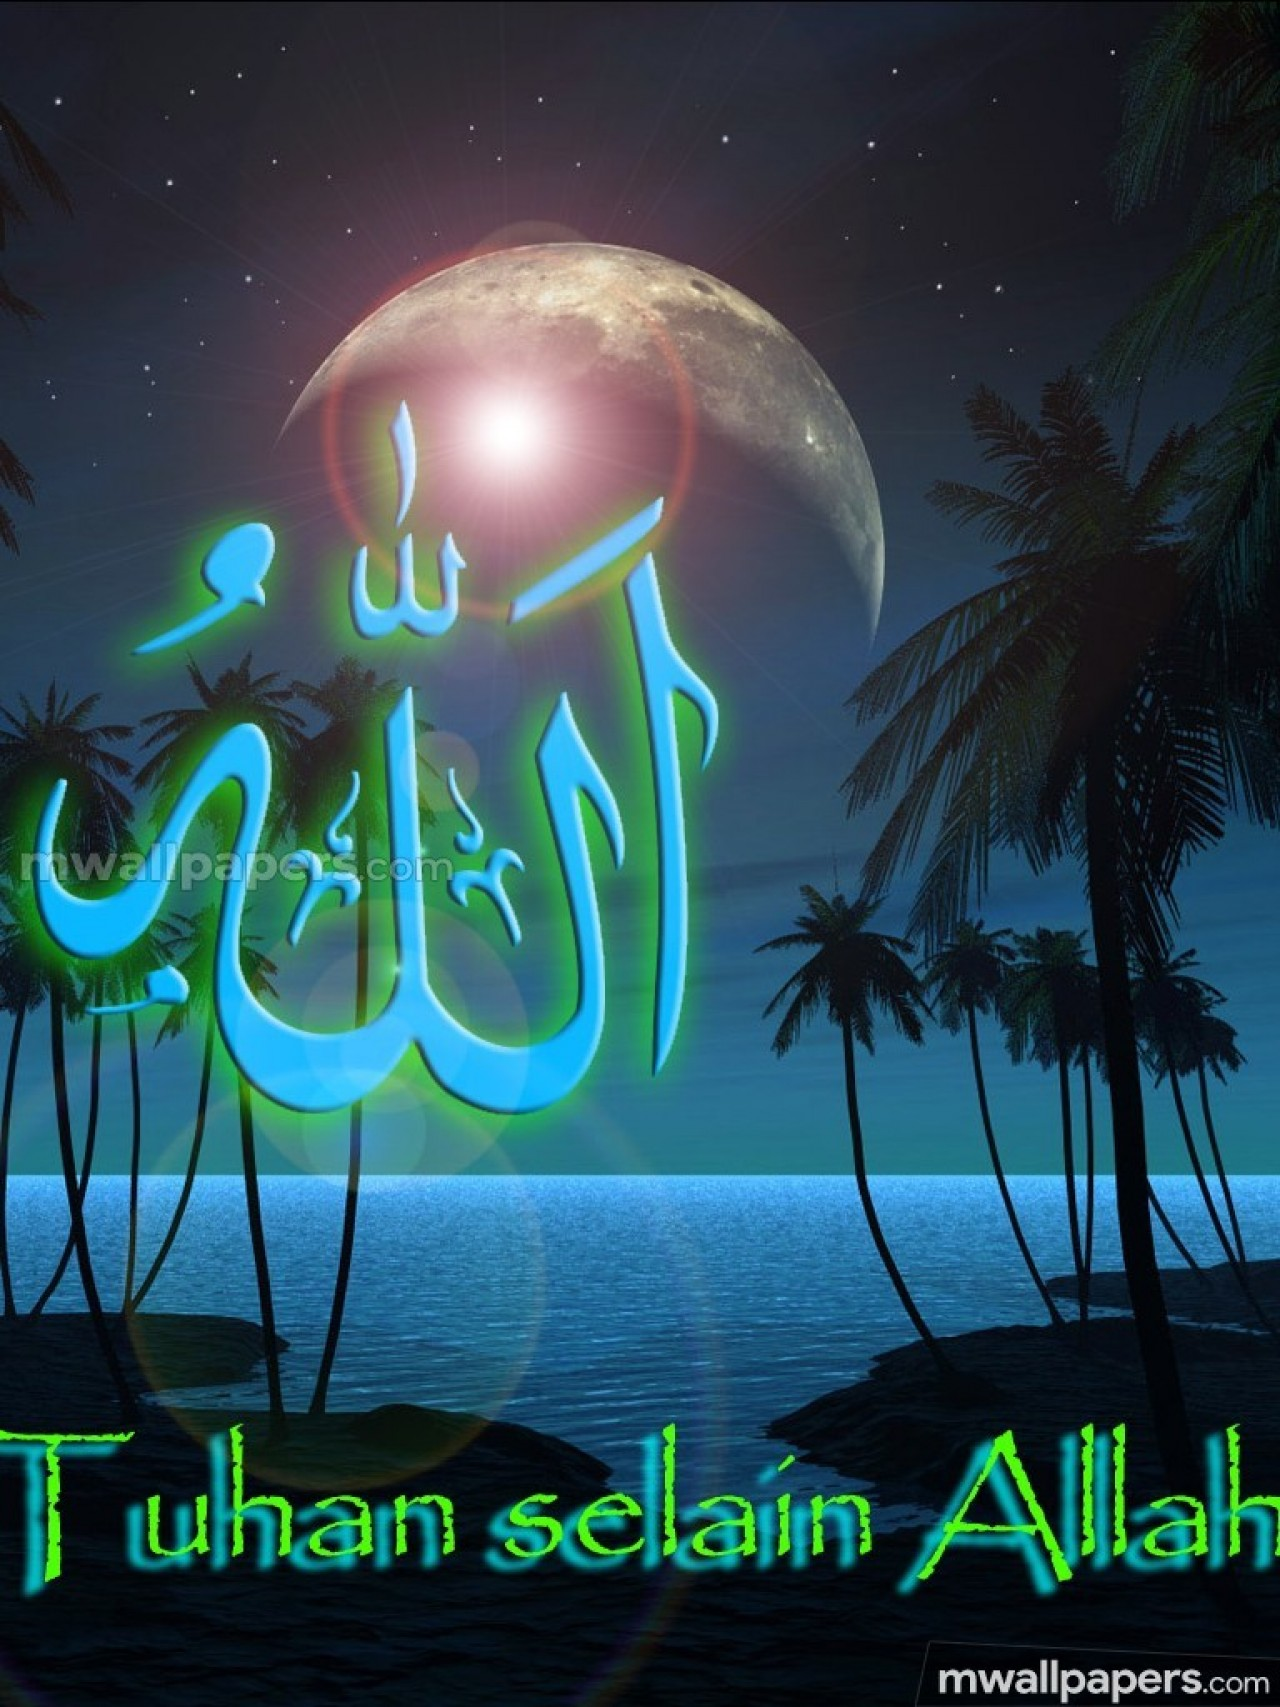 Allah Latest Hd Photos Androidiphonetablet Hd Wallpaper